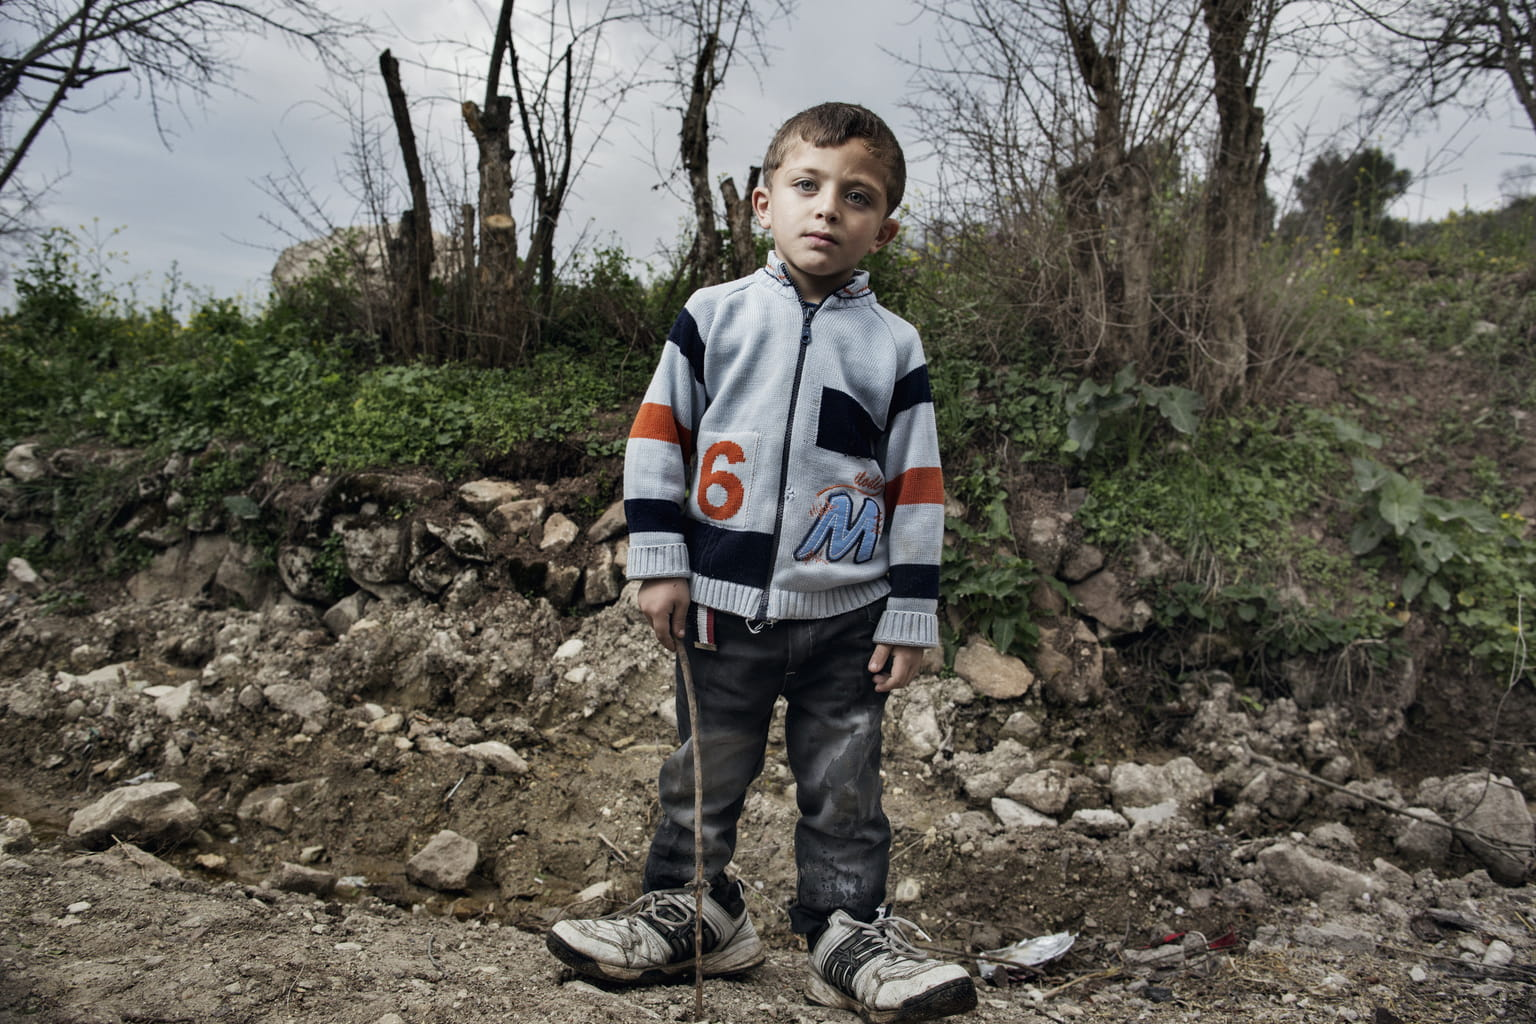 March 9, 2014, Gorentas, Turkey. A Syrian refugee boy plays with a stick. He is wearing his father's shoes because he has none that  t him. More than 200 Syrian refugee families live among this cluster of seven villages next to the Syrian/Turkish border.